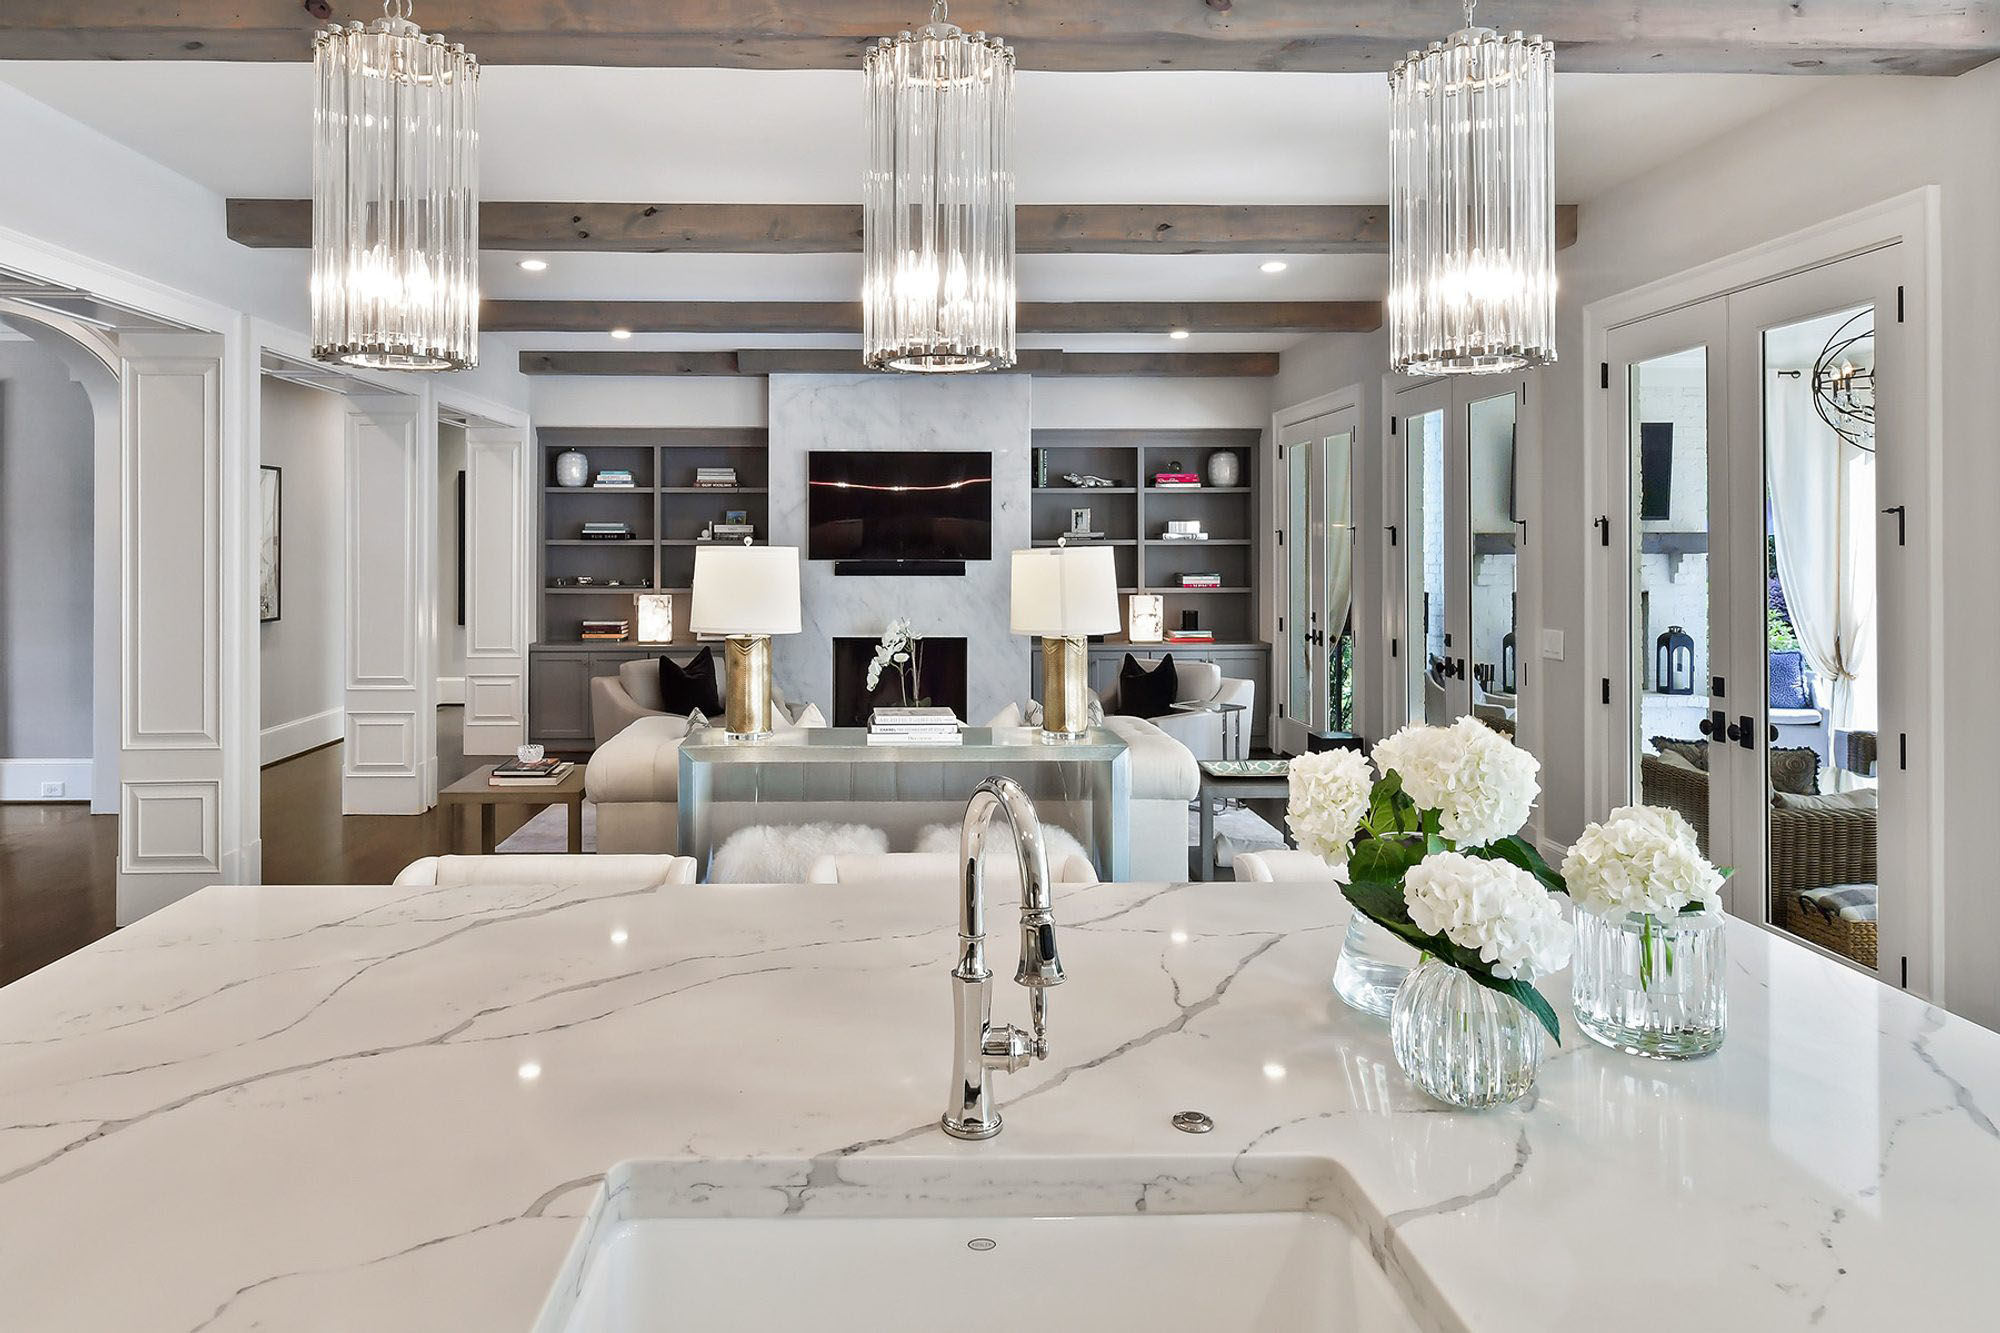 Beautiful marble quartz countertops with a white undermount sink and chrome faucet.